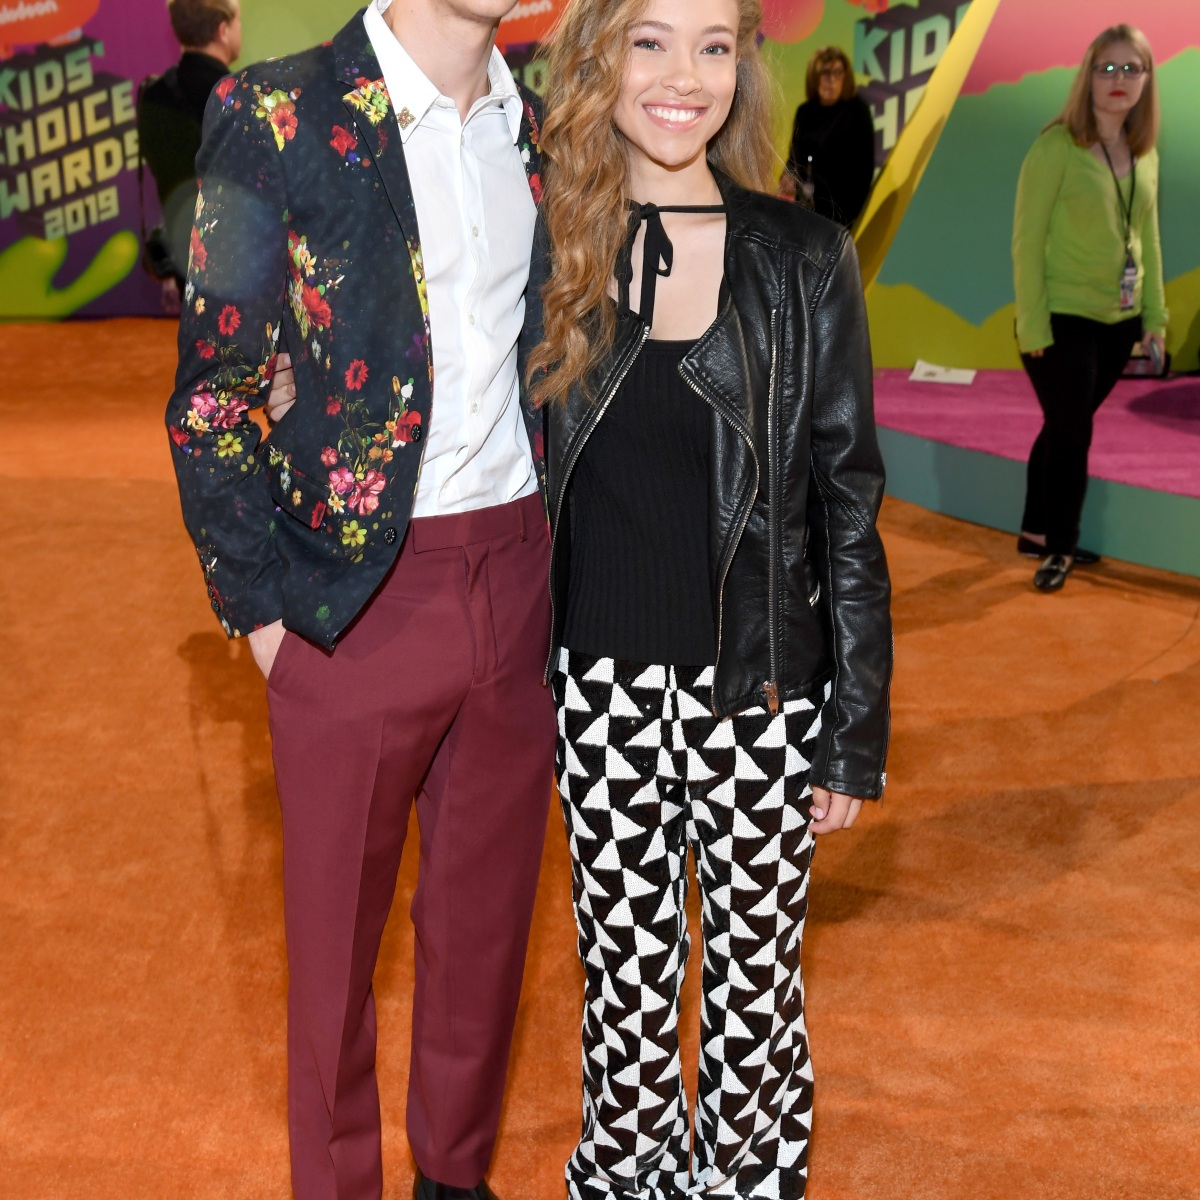 Jace Norman and Shelby Simmons Dating Rumors, Relationship